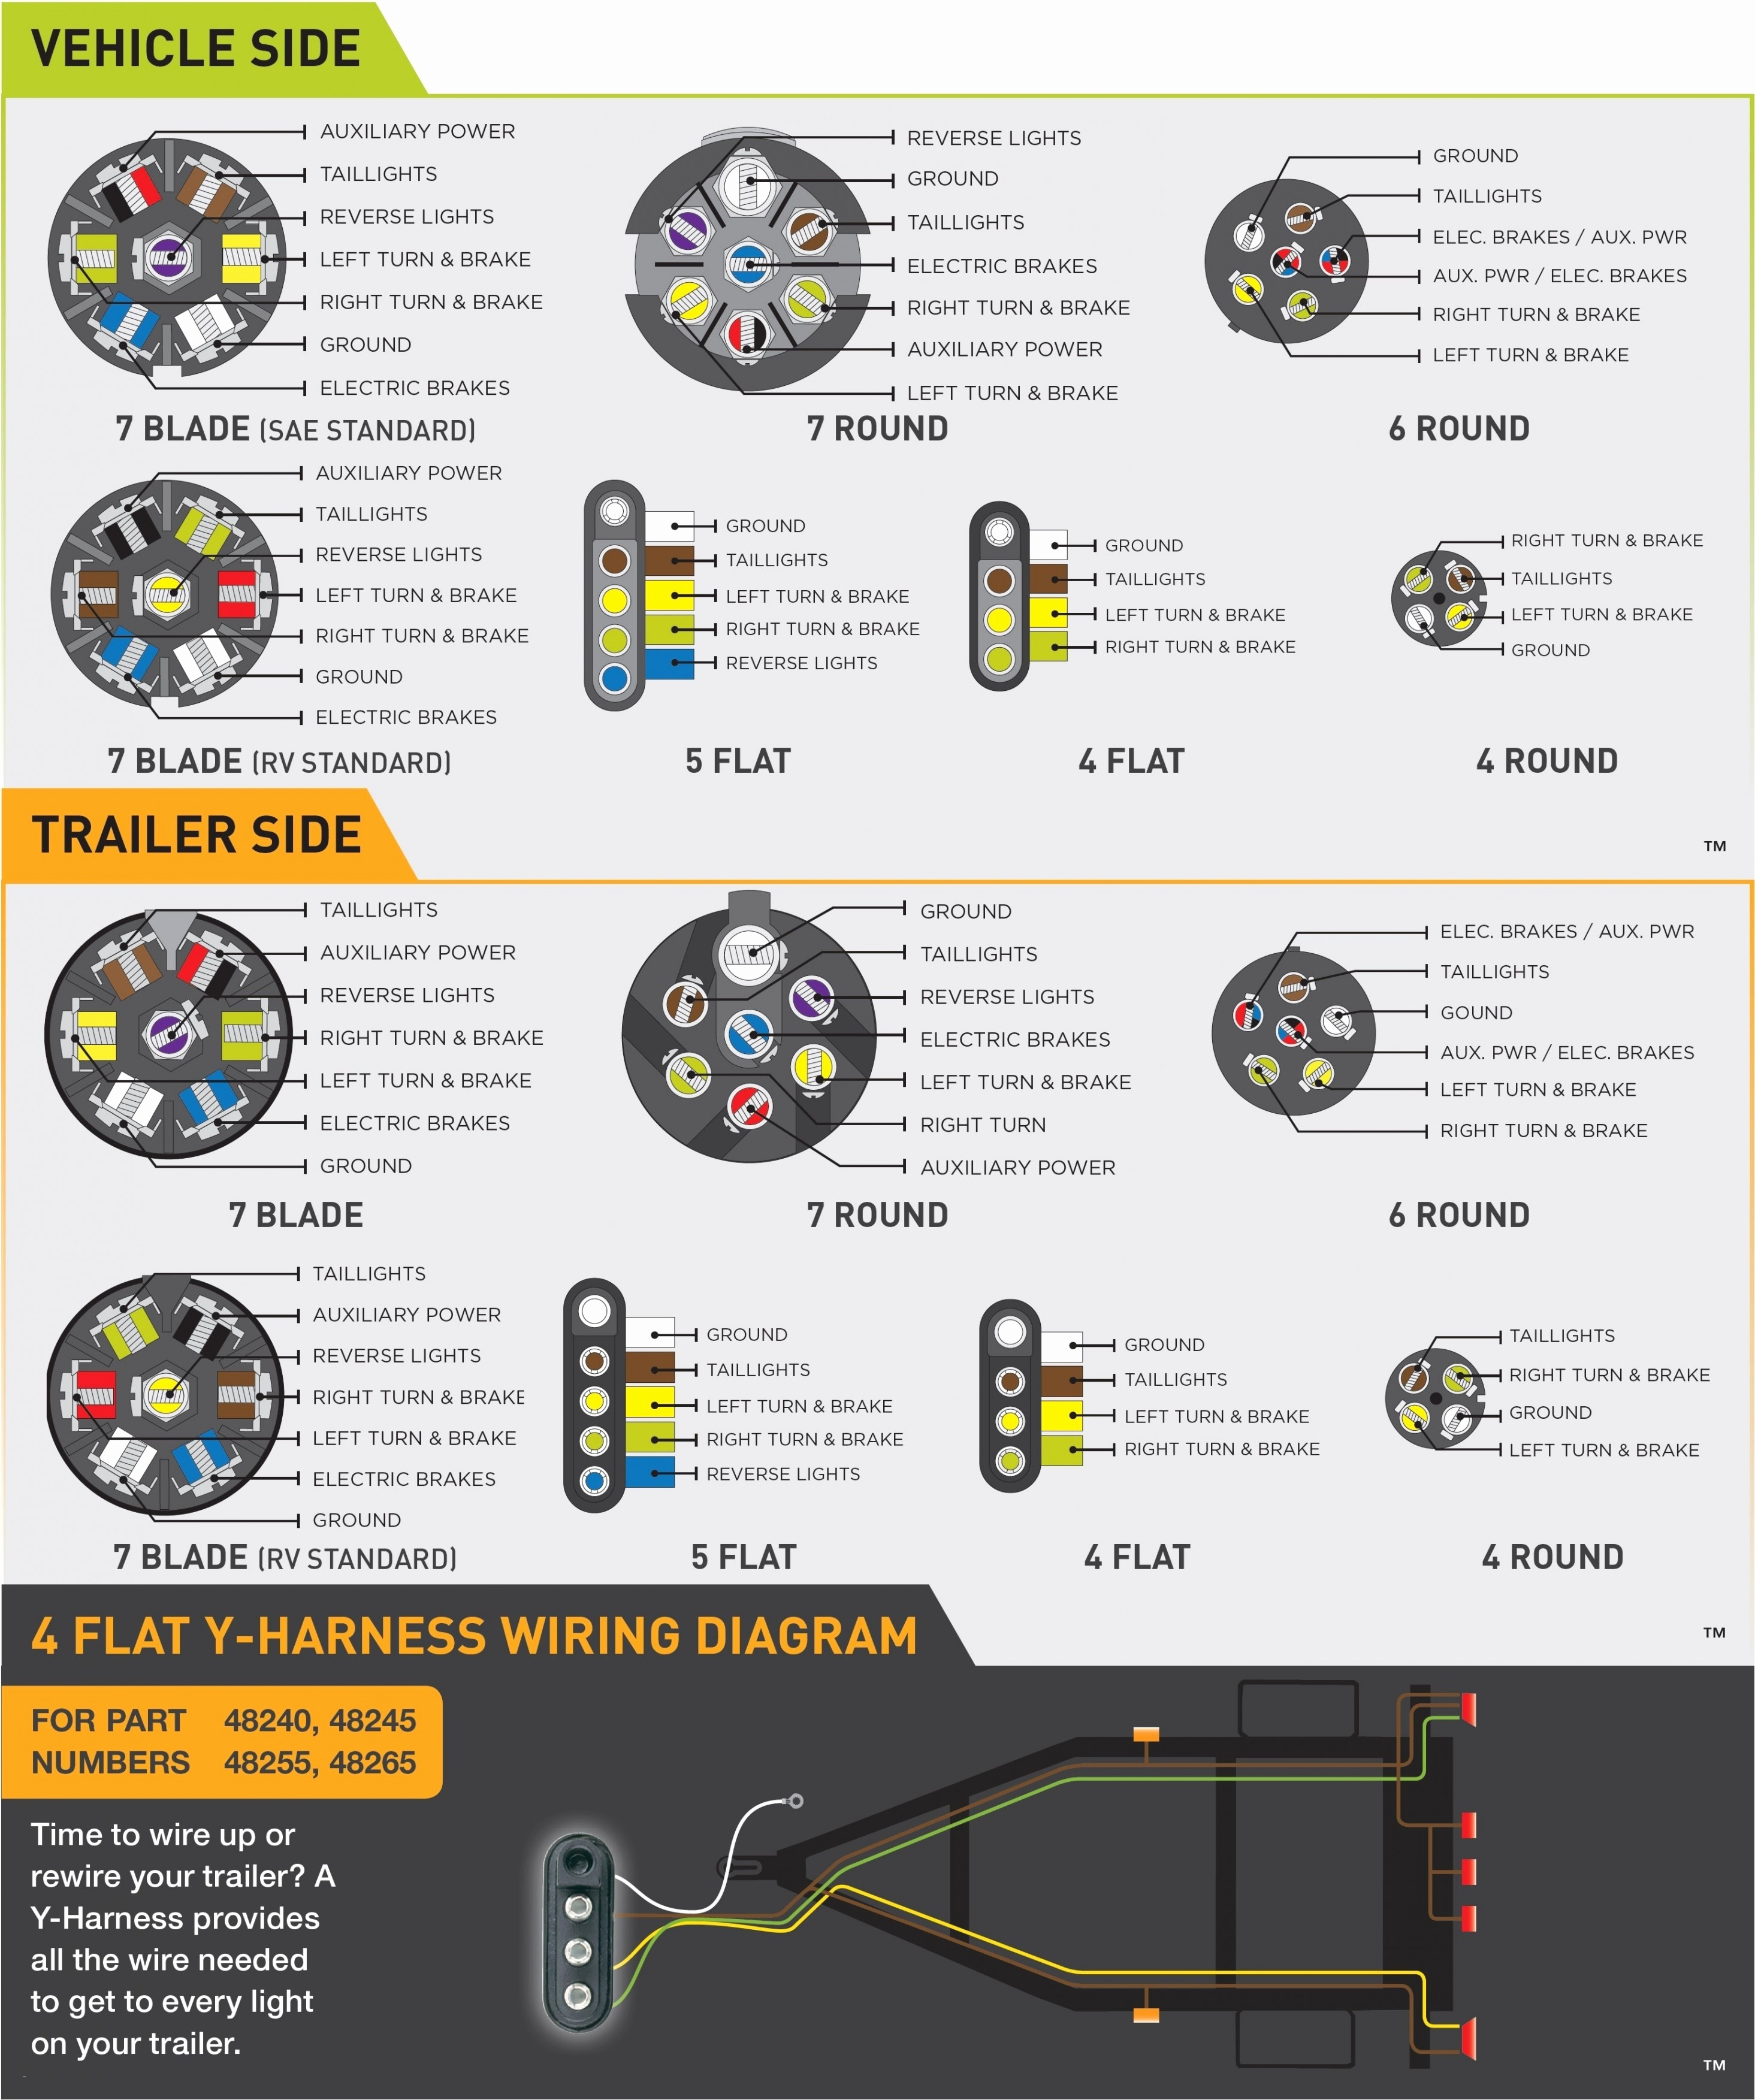 50 New 4 Wire Trailer Light Diagram | Abdpvtltd - Wiring Diagram For Trailer Lights 4 Way